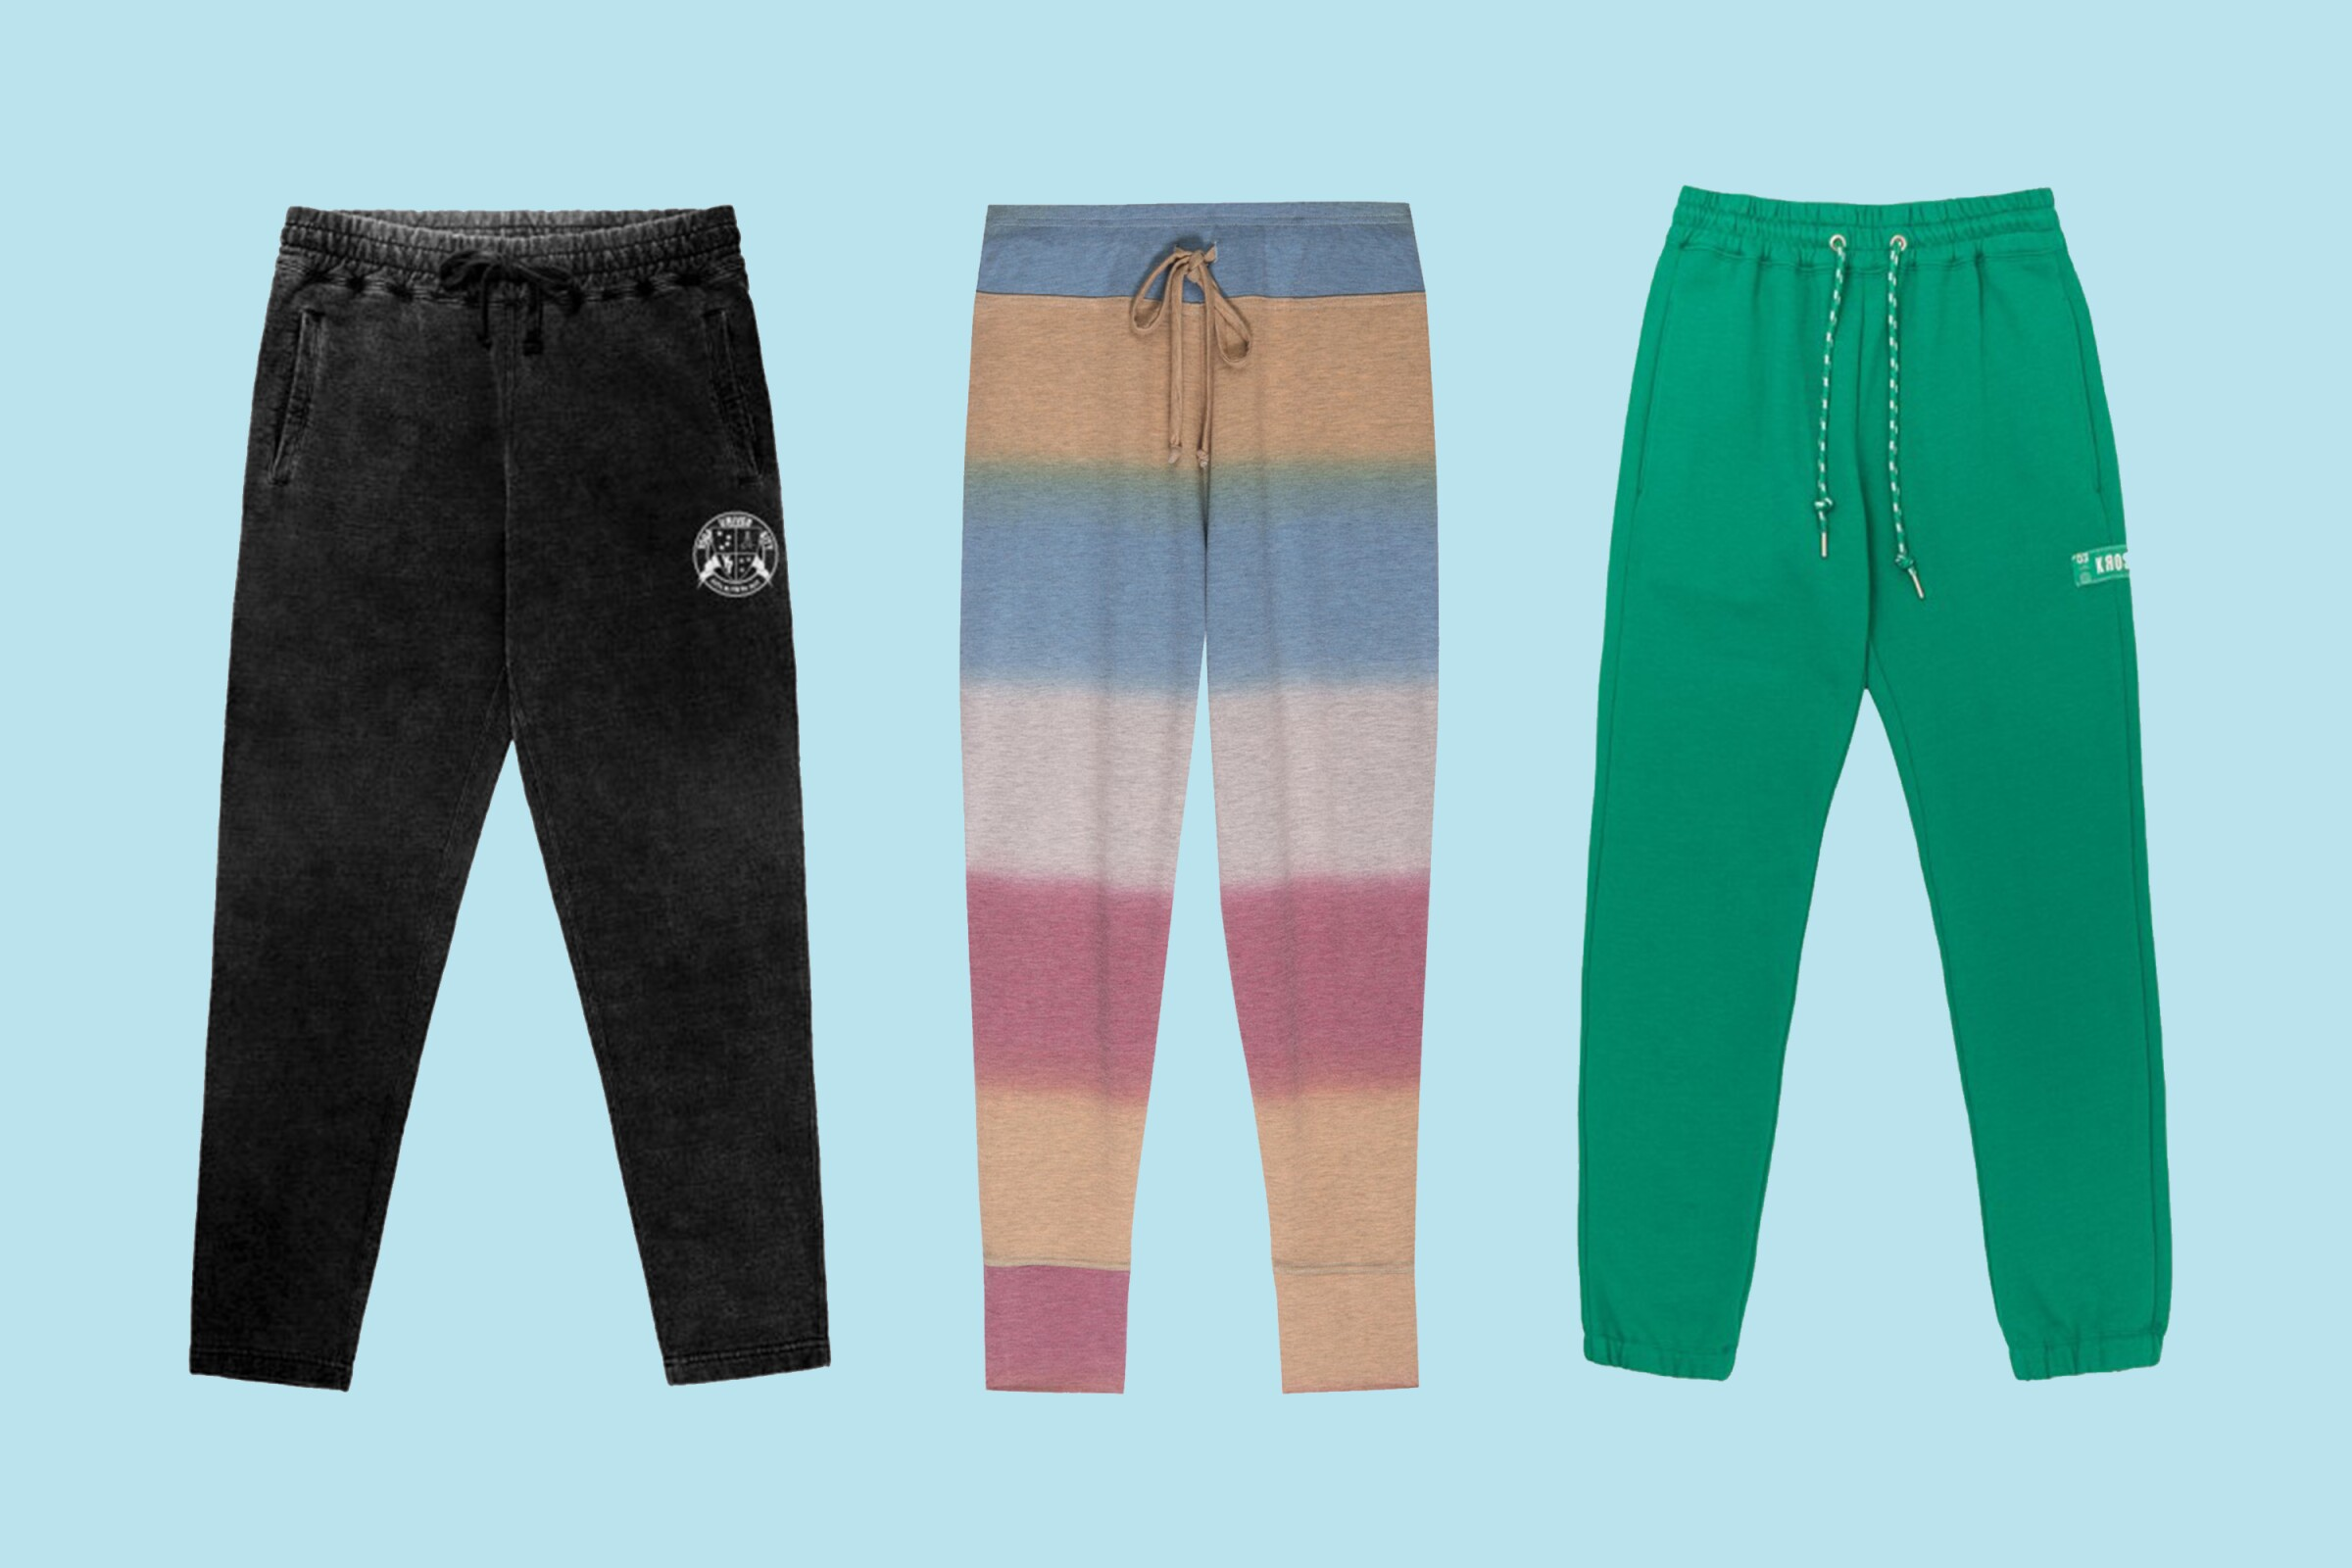 Joggers from the Y7 X Nike collaboration, $70, from left; jogger pants from B Collection by Bobeau, $68; and unisex sweatpants from Krost New York, $116.